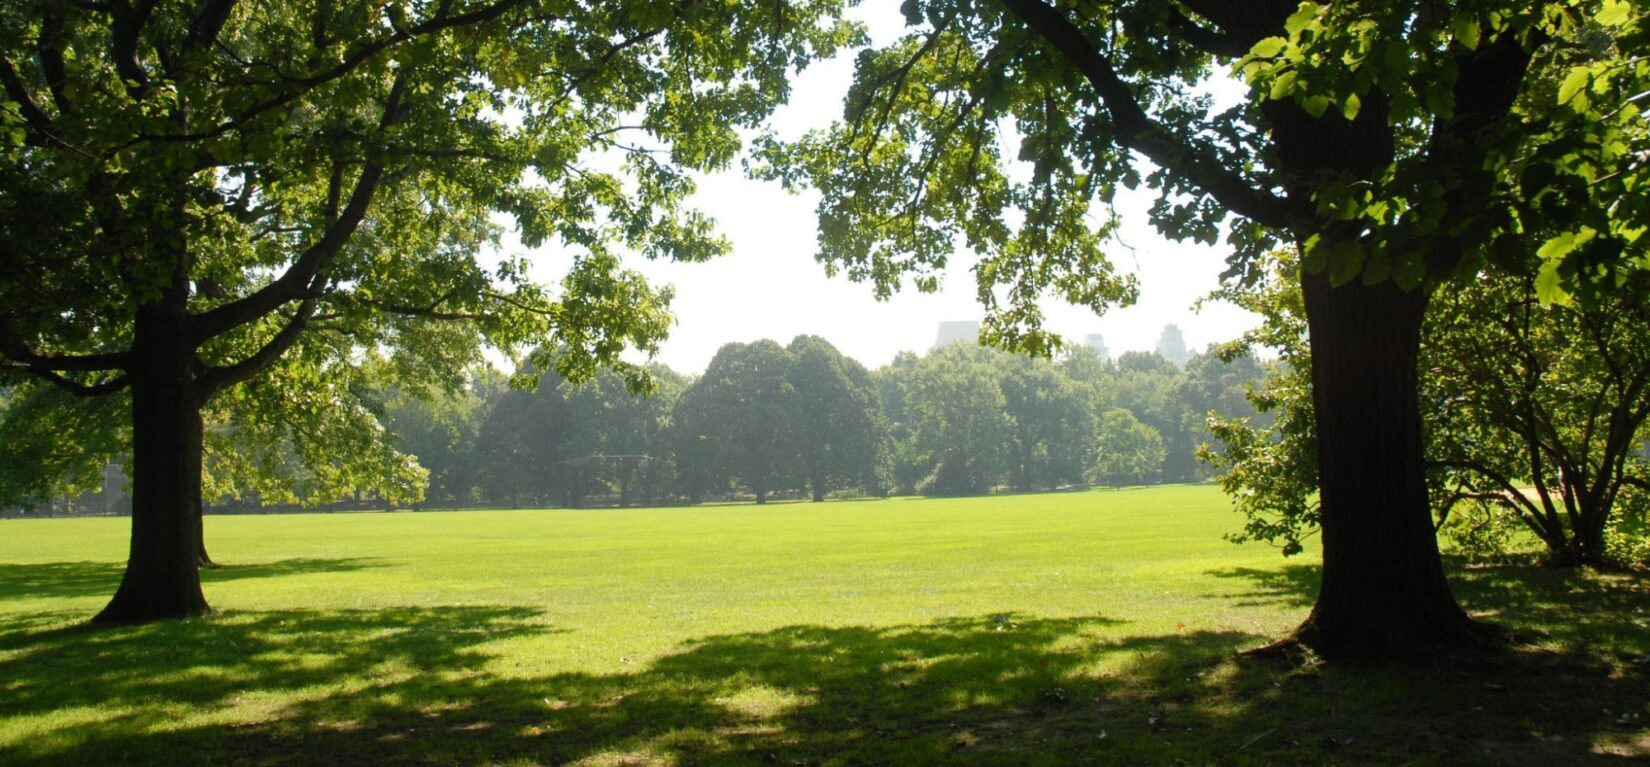 A summer haze is visible in the distance across the width of the Lawn.